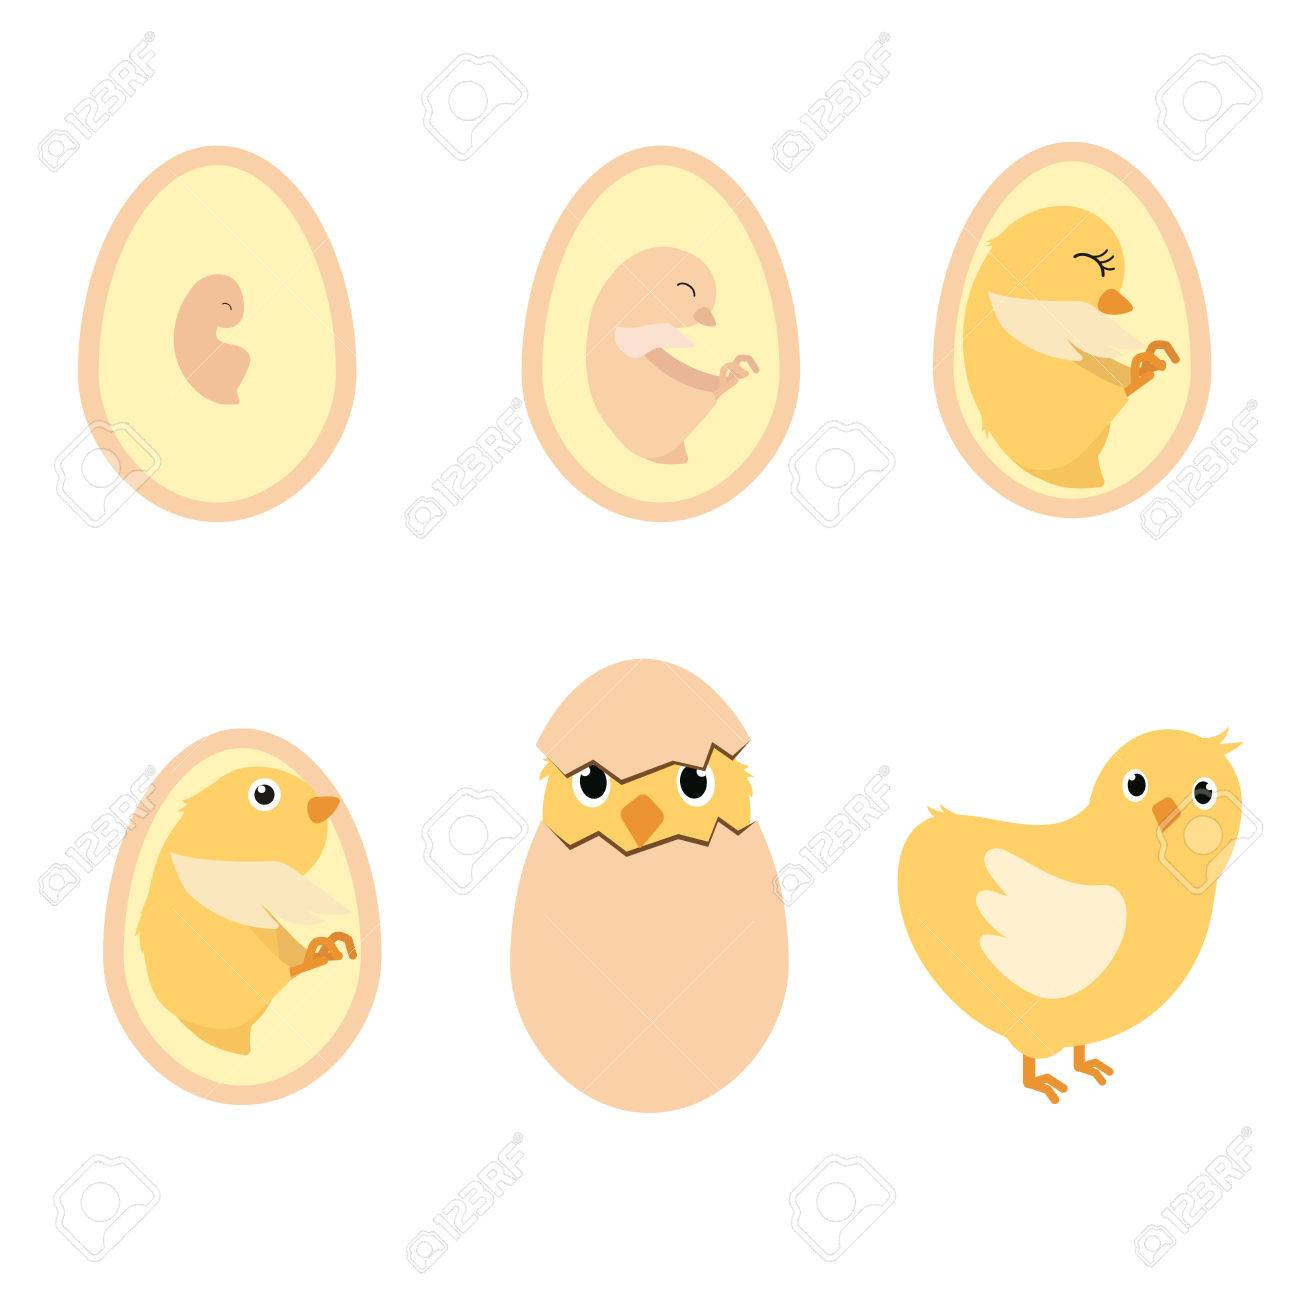 Chicken Egg Life Cycle And Anatomy Illustration Vector Royalty Free